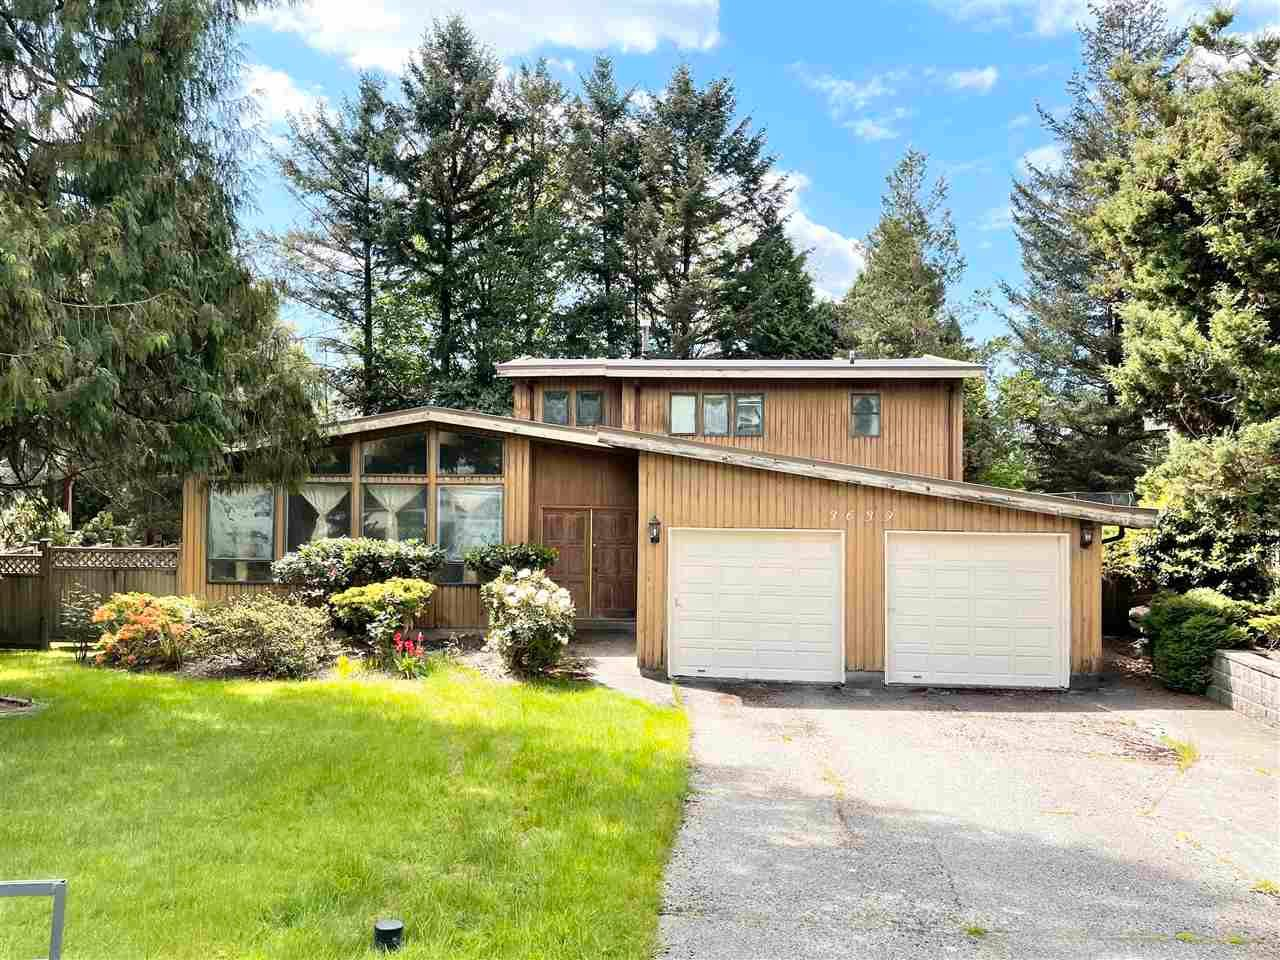 Main Photo: 3639 LYNNDALE Crescent in Burnaby: Government Road House for sale (Burnaby North)  : MLS®# R2577362